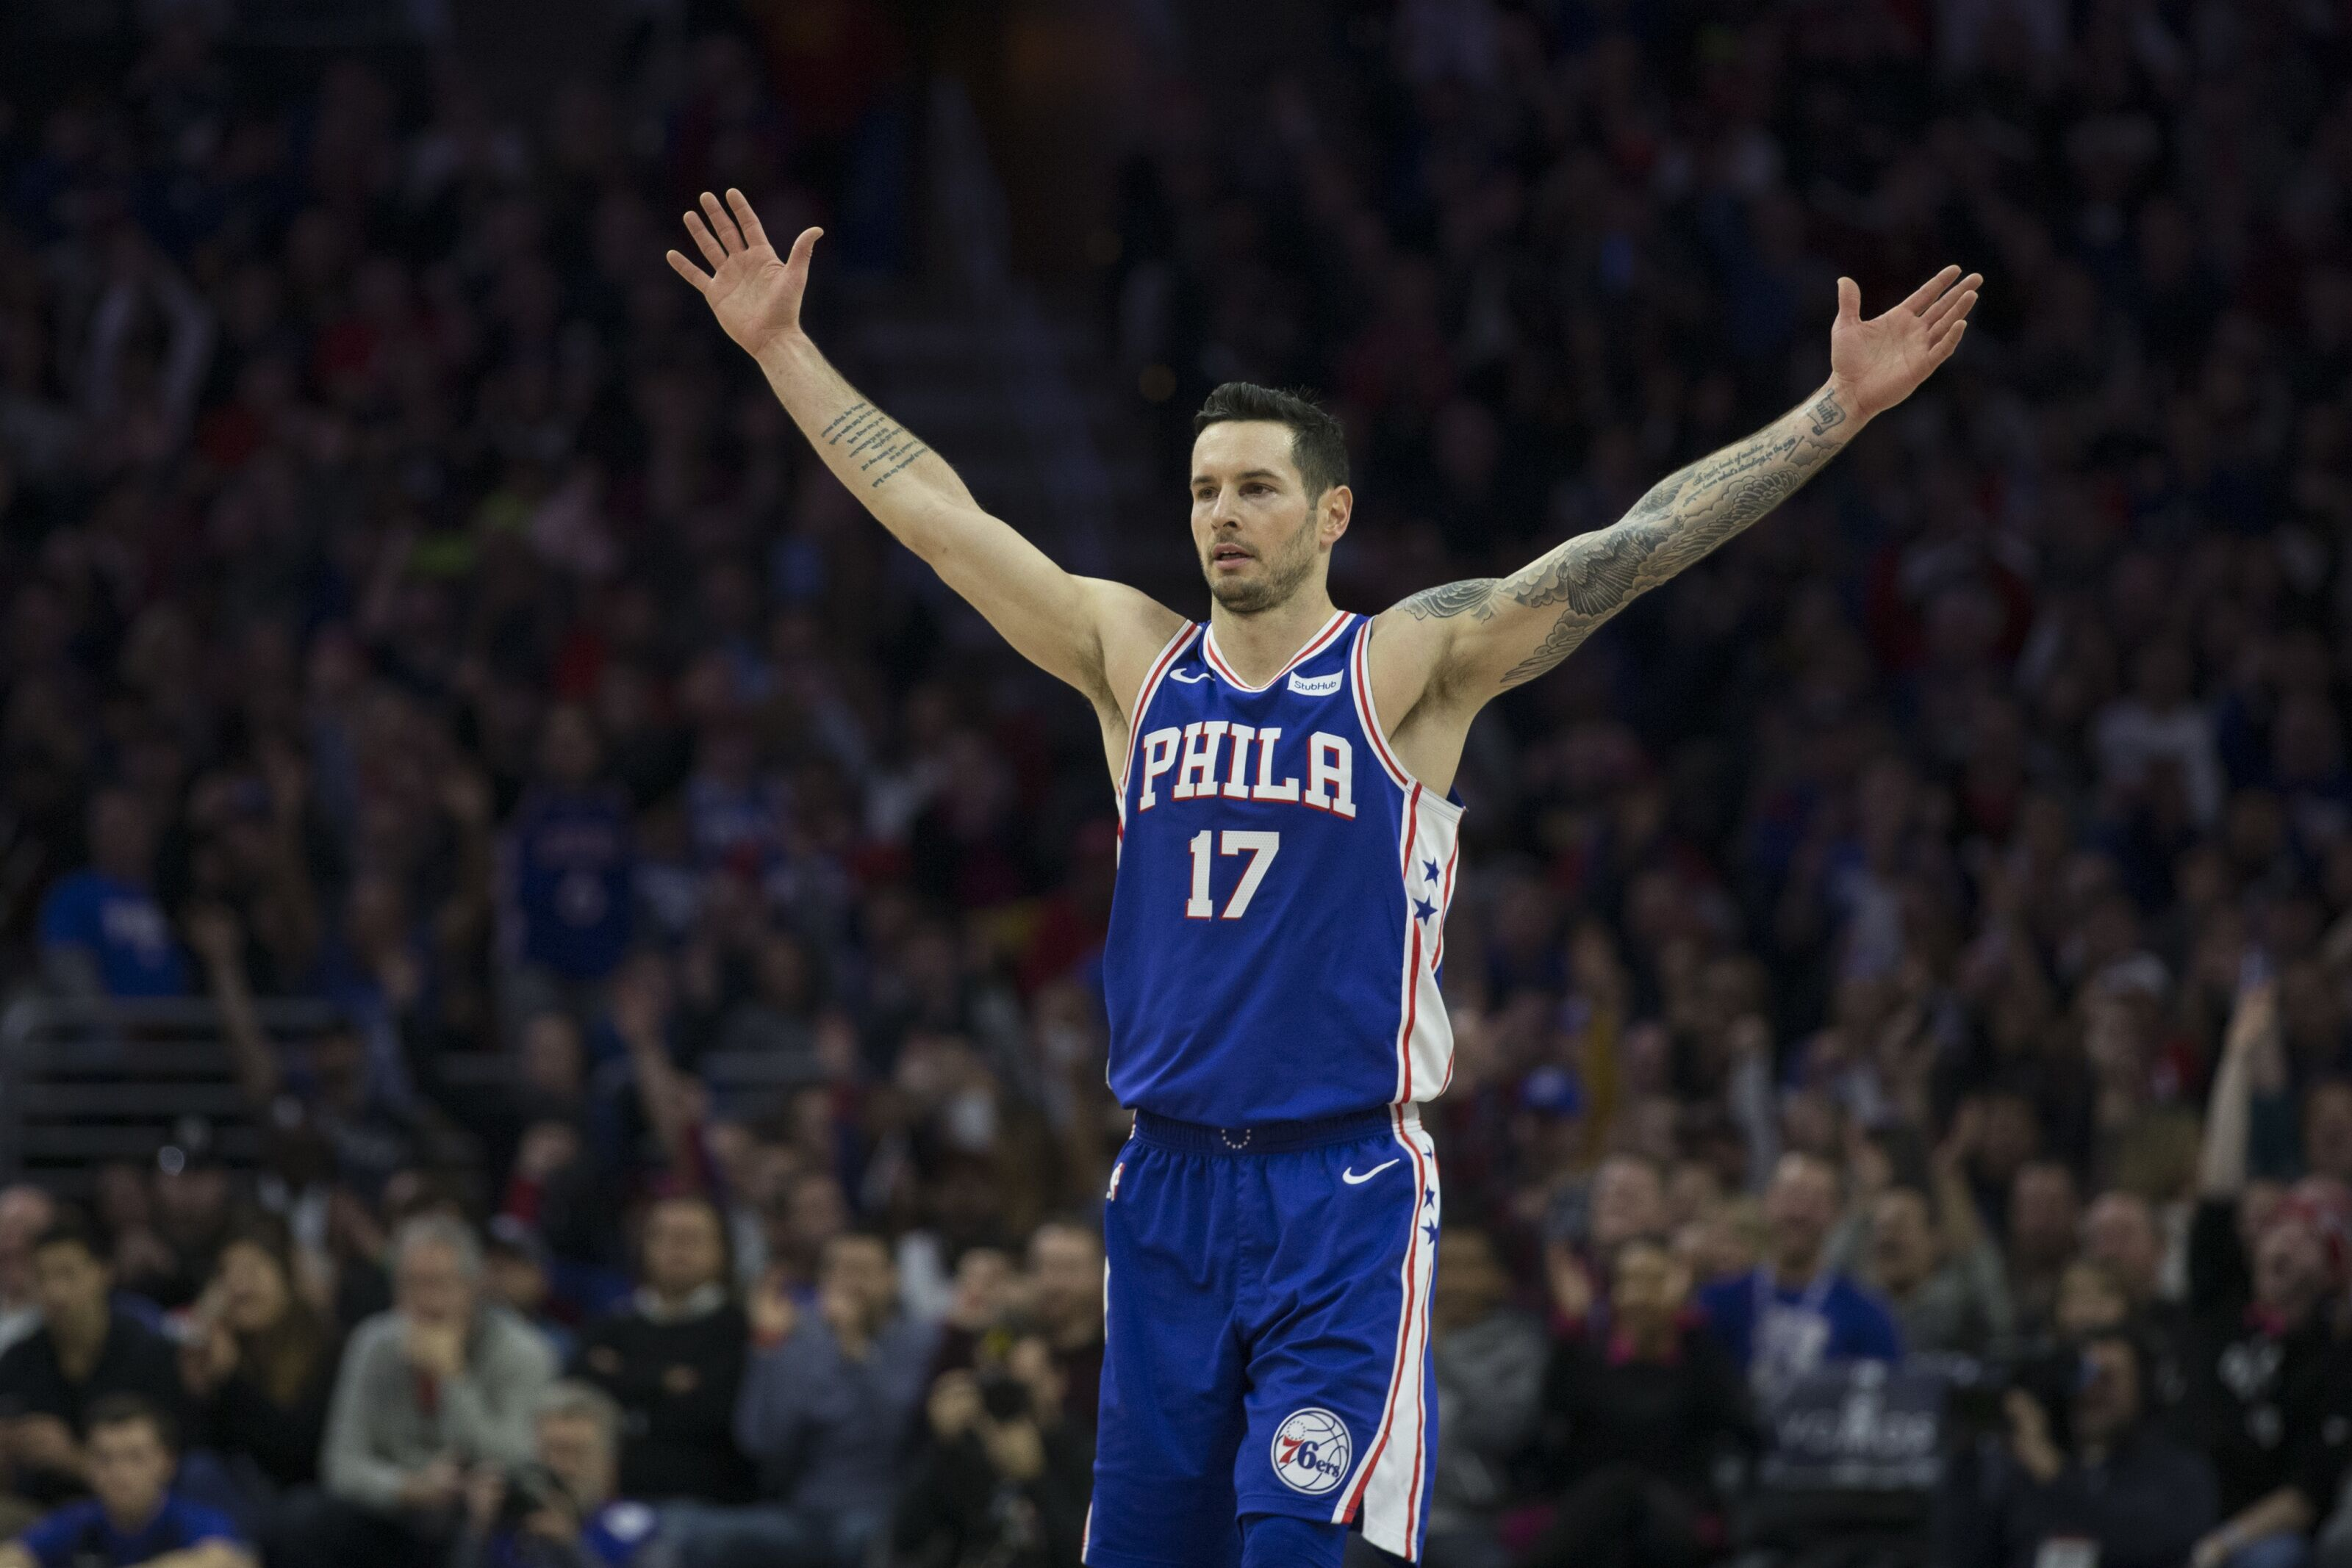 Duke Basketball J J Redick Leads 76ers To Comeback Victory In Utah